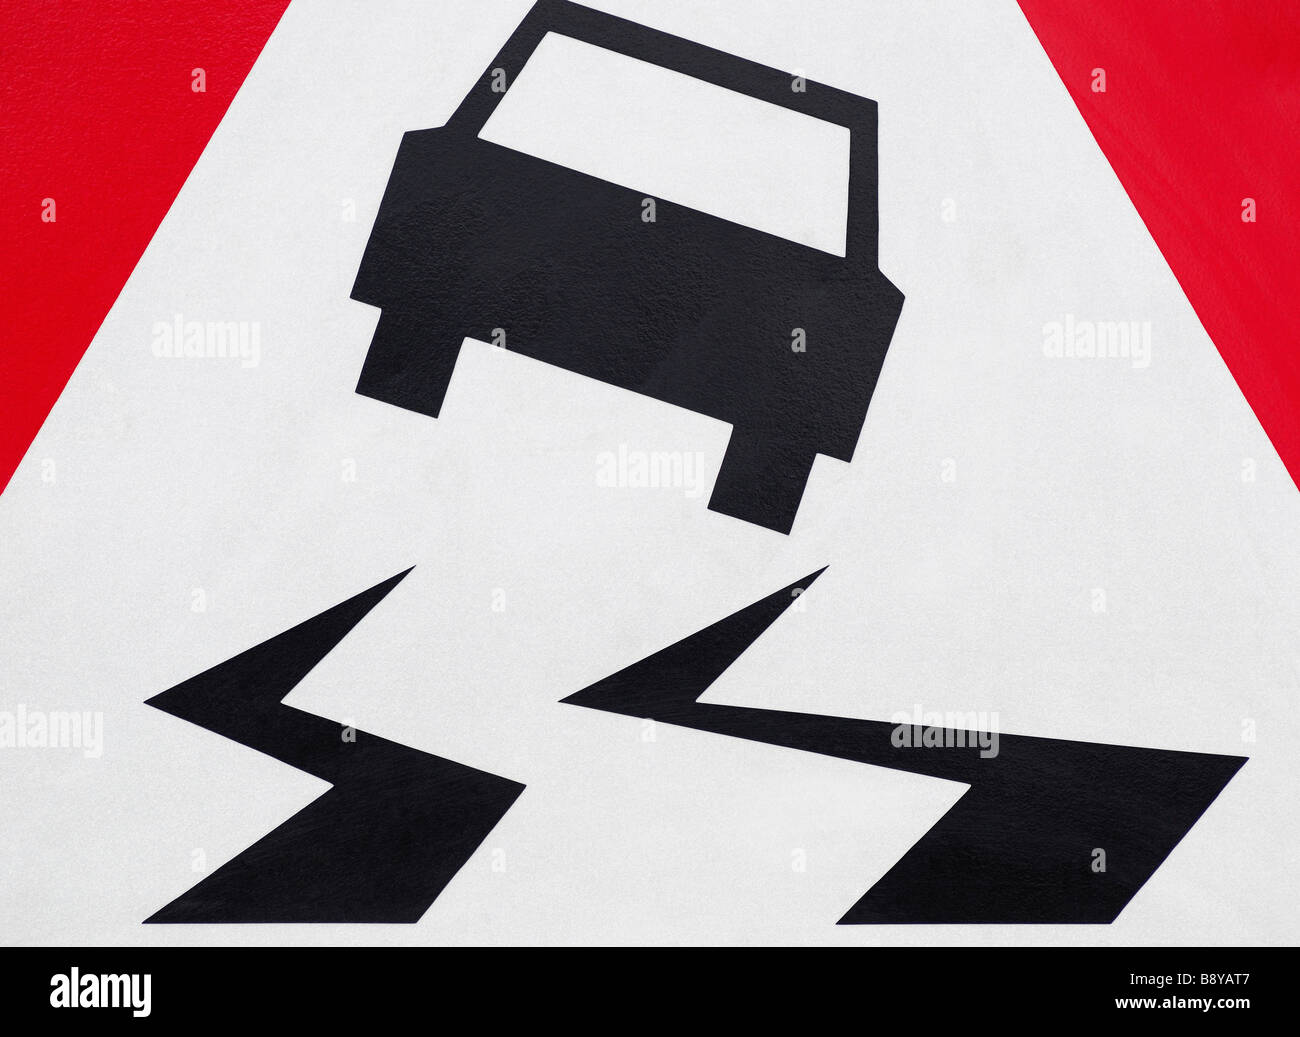 Slippery Road Sign - Stock Image